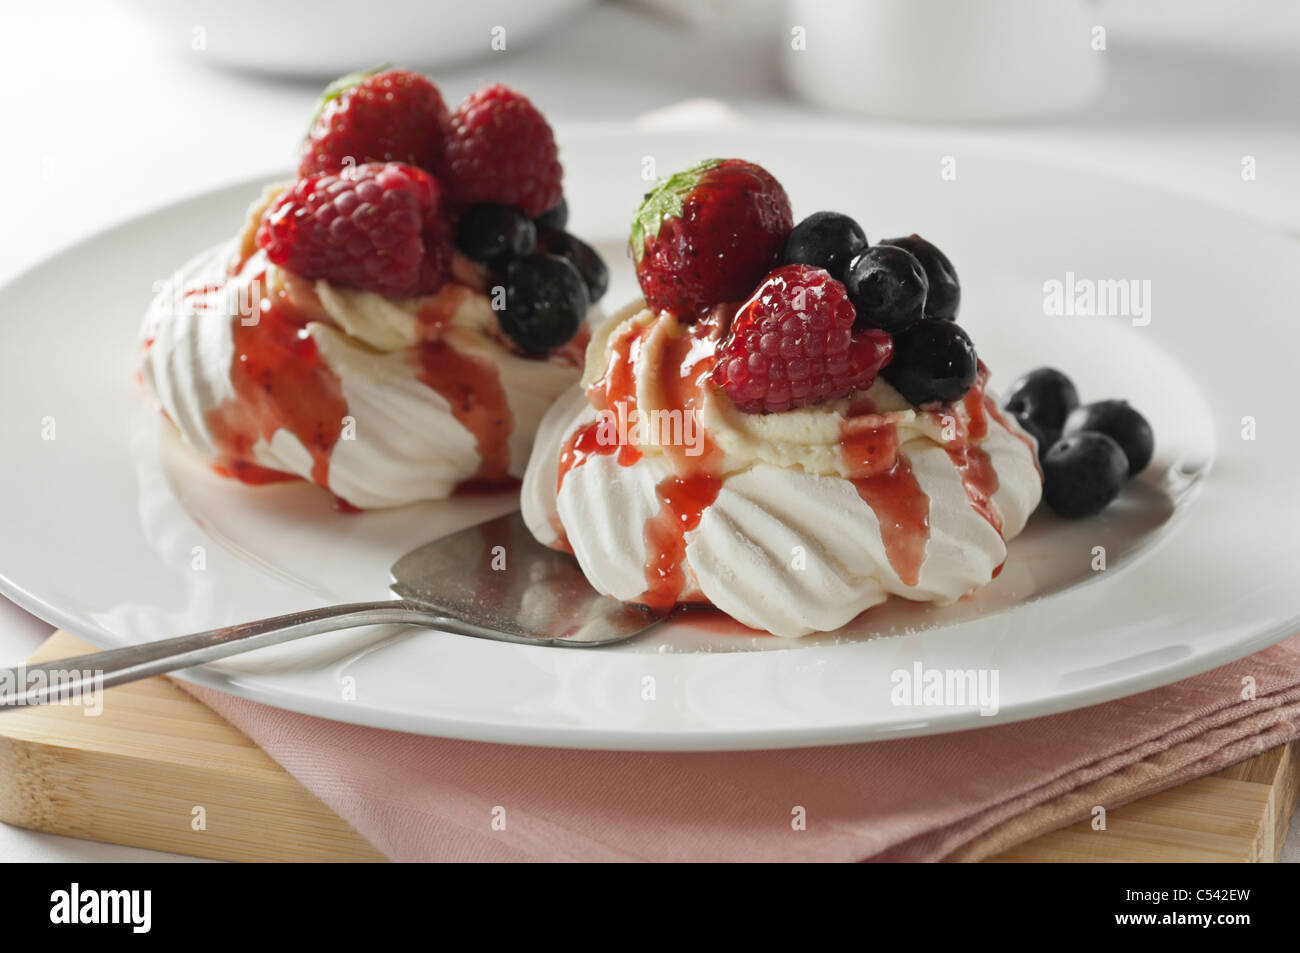 Meringue nests with fruit and cream - Stock Image